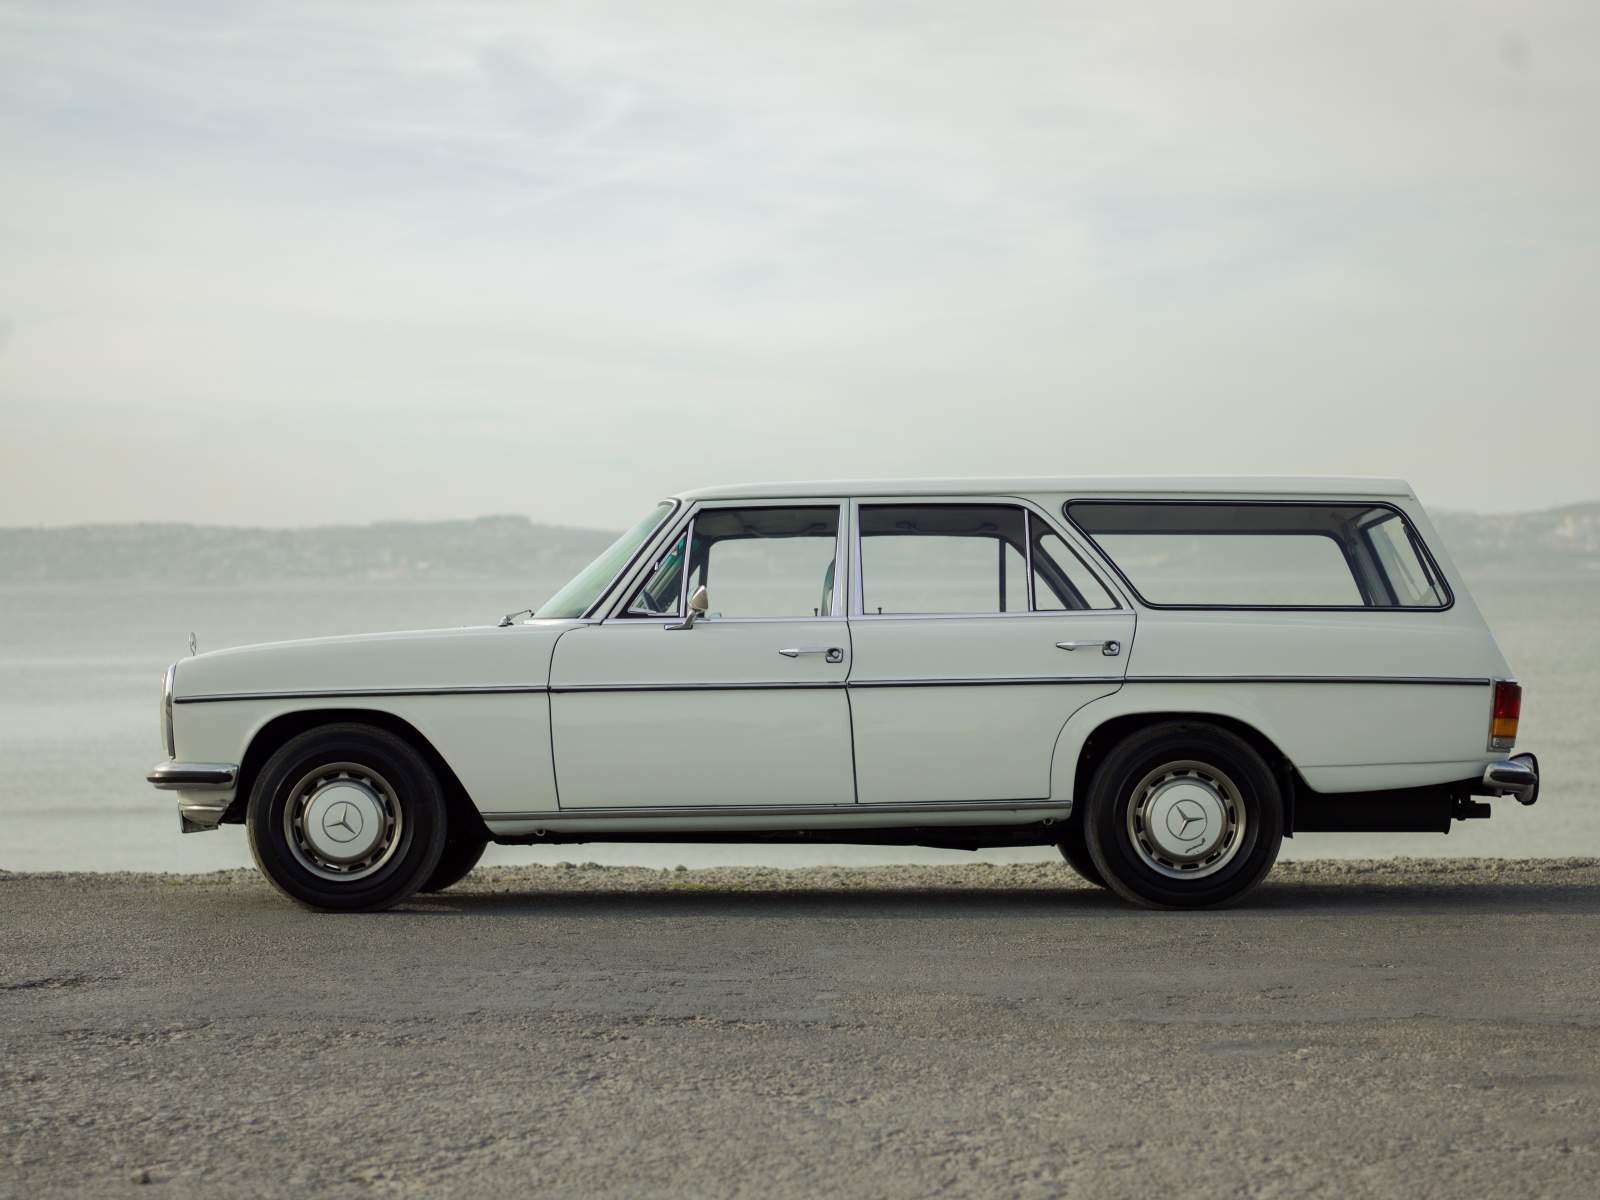 Consignatie oldtimer of youngtimermercedes benz 220d w115 for 1971 mercedes benz 220